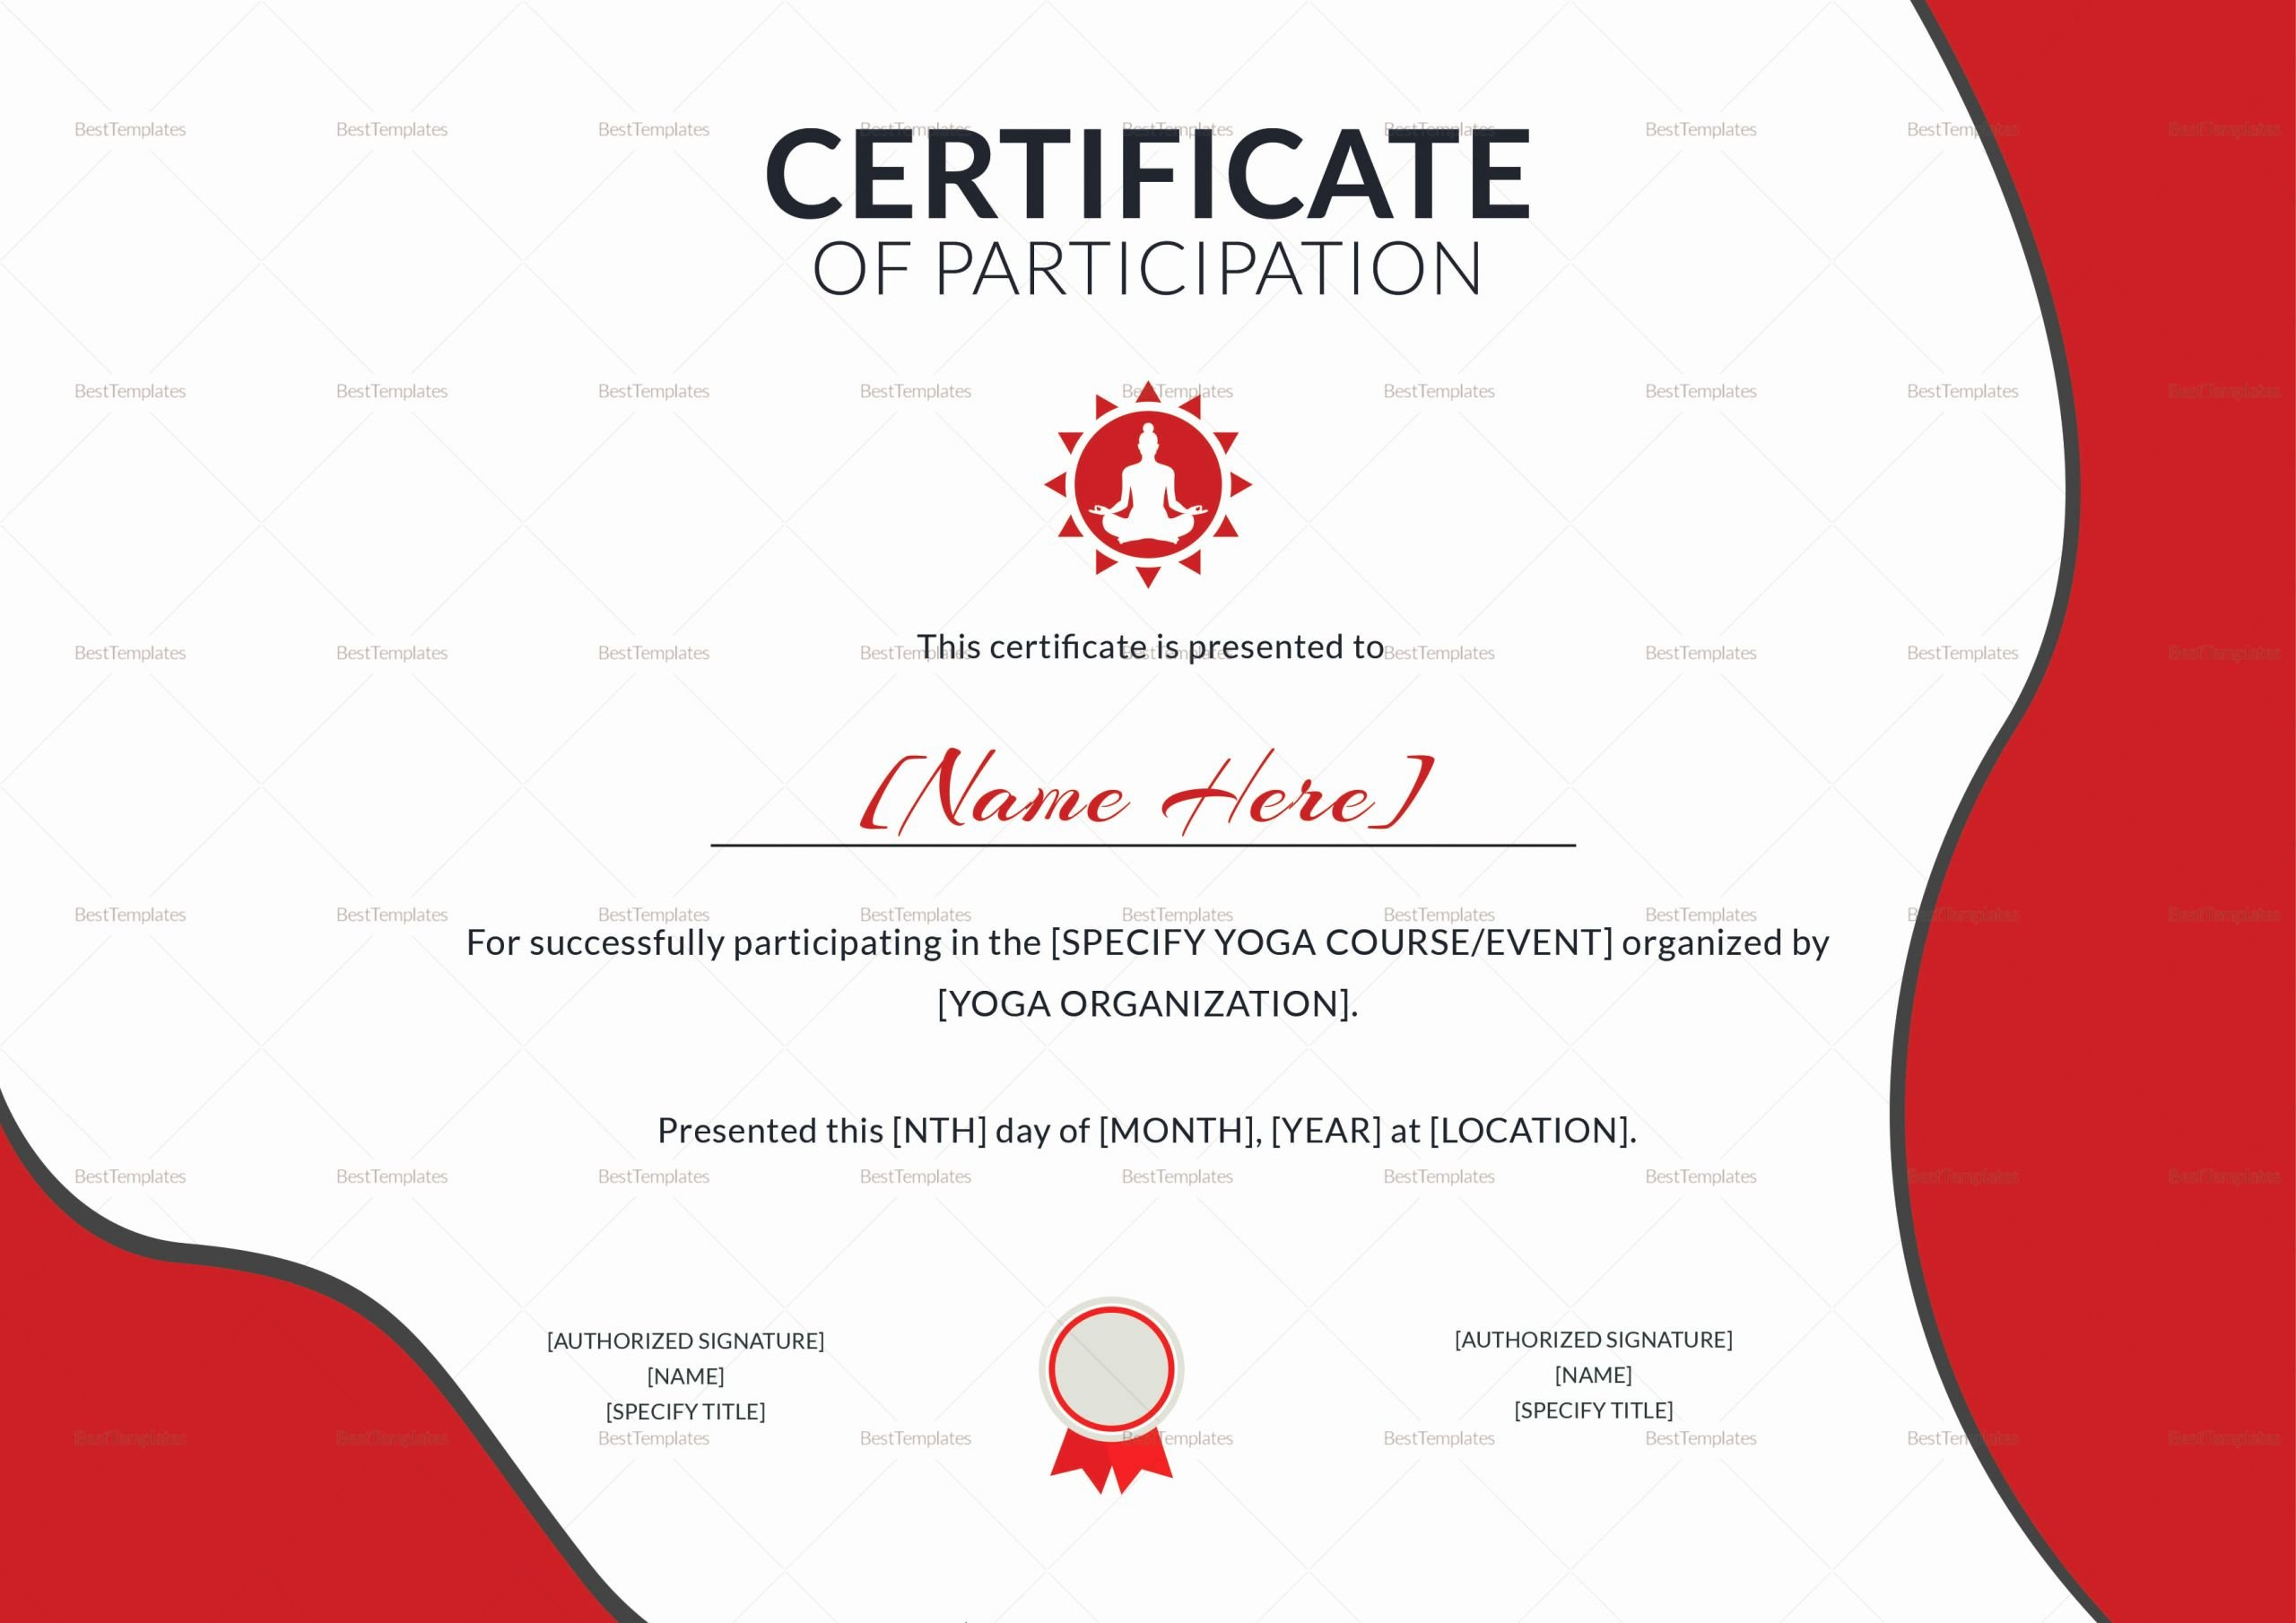 Certificate Of Participation Design Awesome Yoga Participation Certificate Design Template In Psd Word